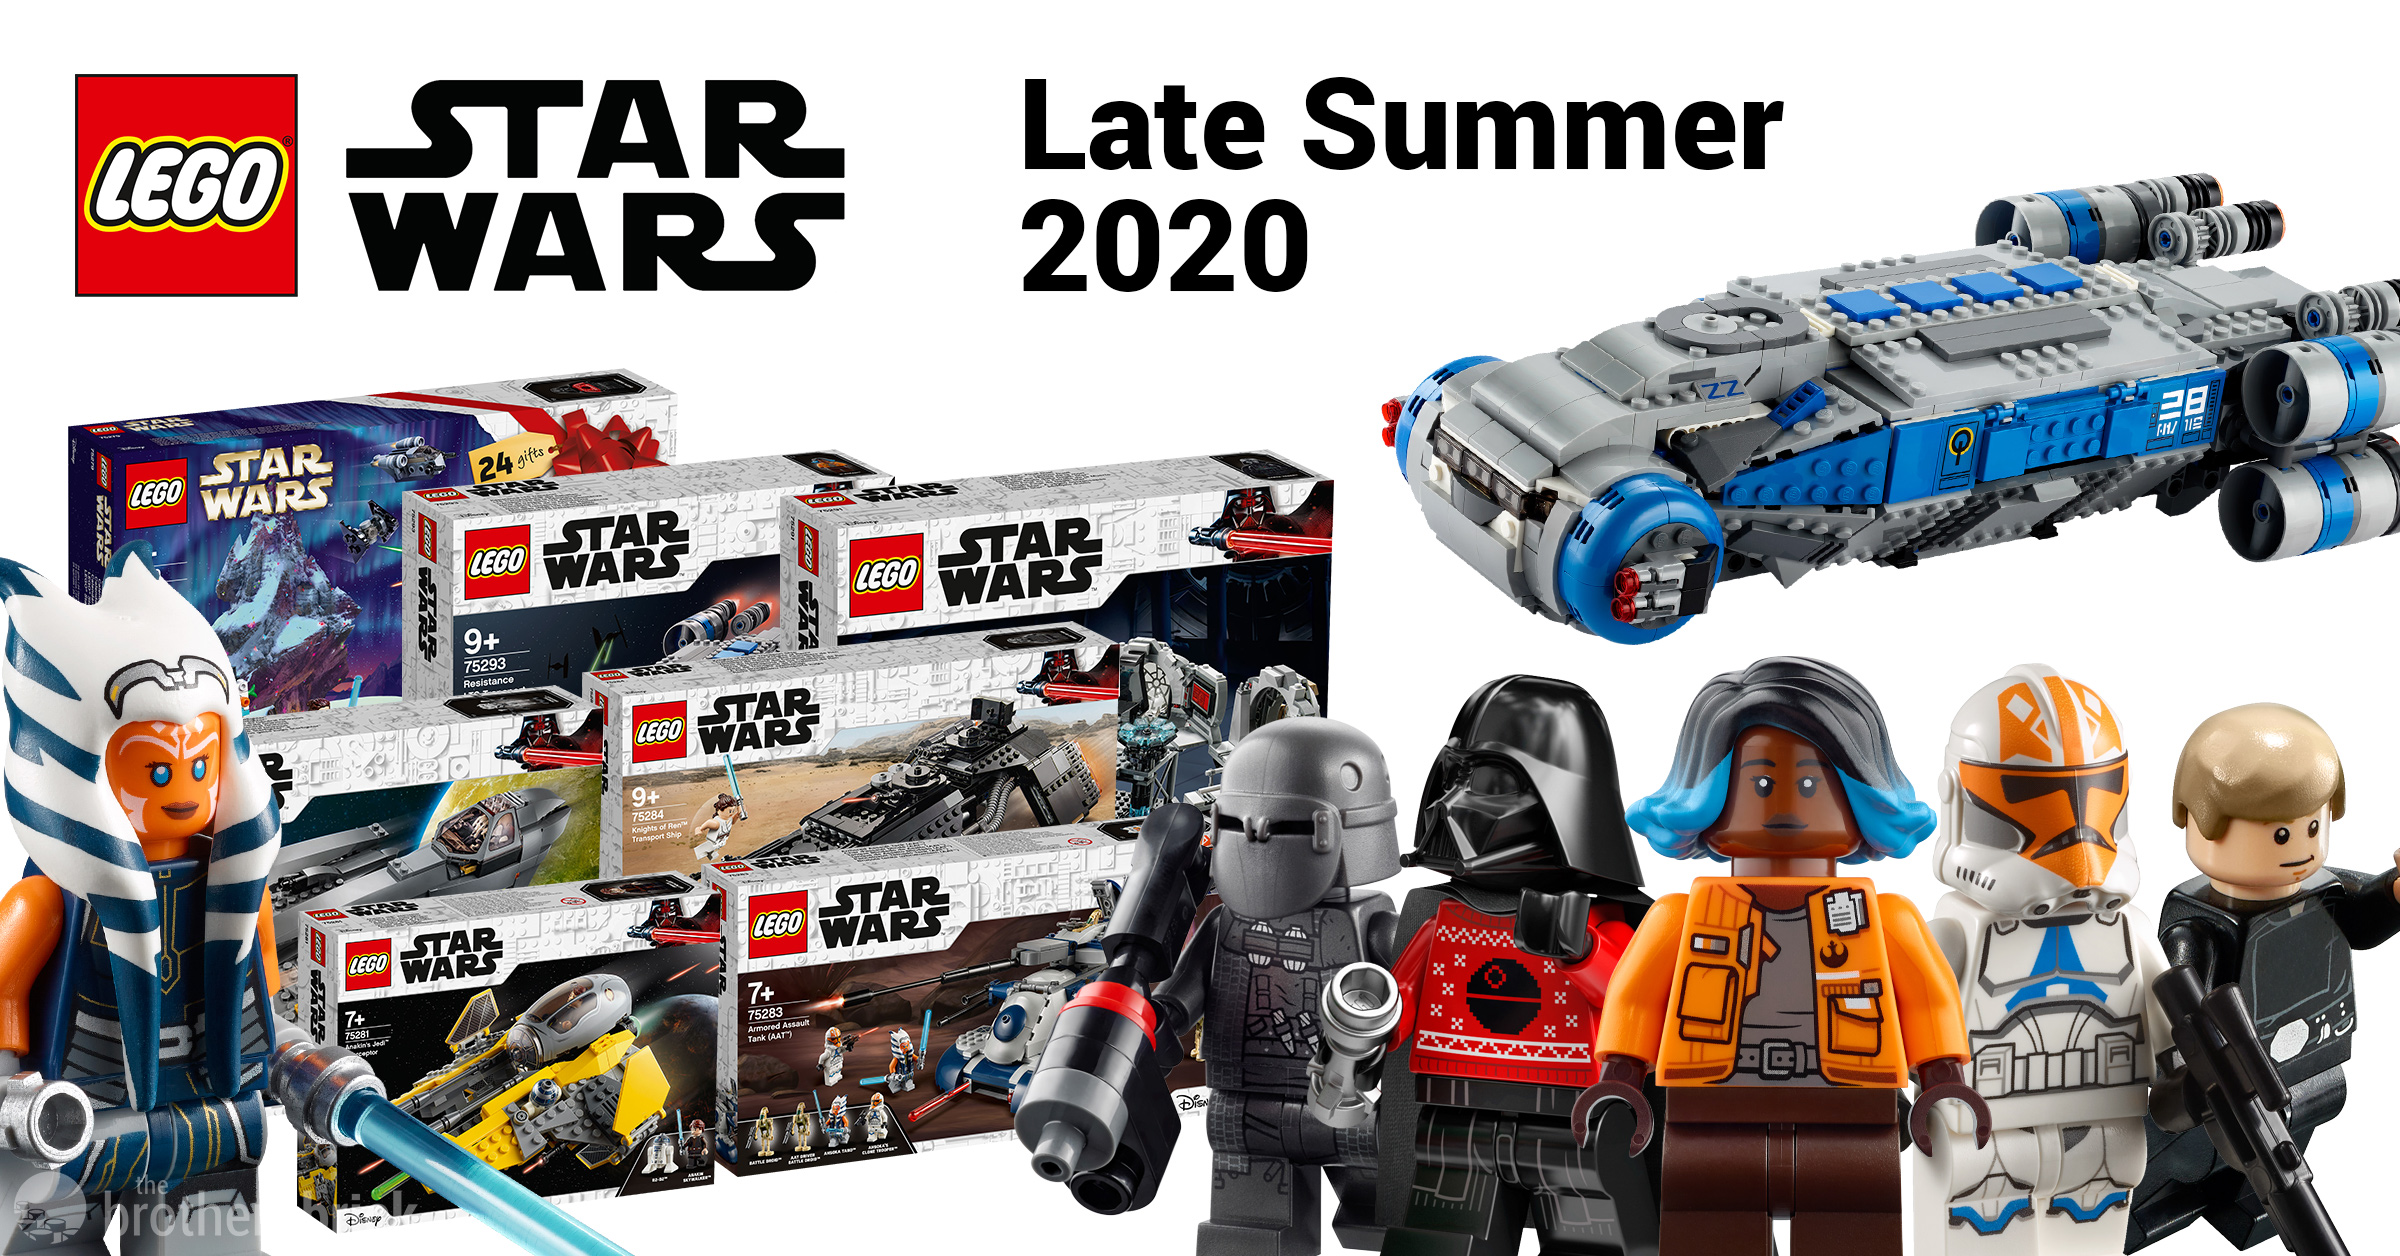 New Star Wars Lego Sets Christmas 2020 LEGO reveals 7 new Star Wars sets for late summer 2020 including